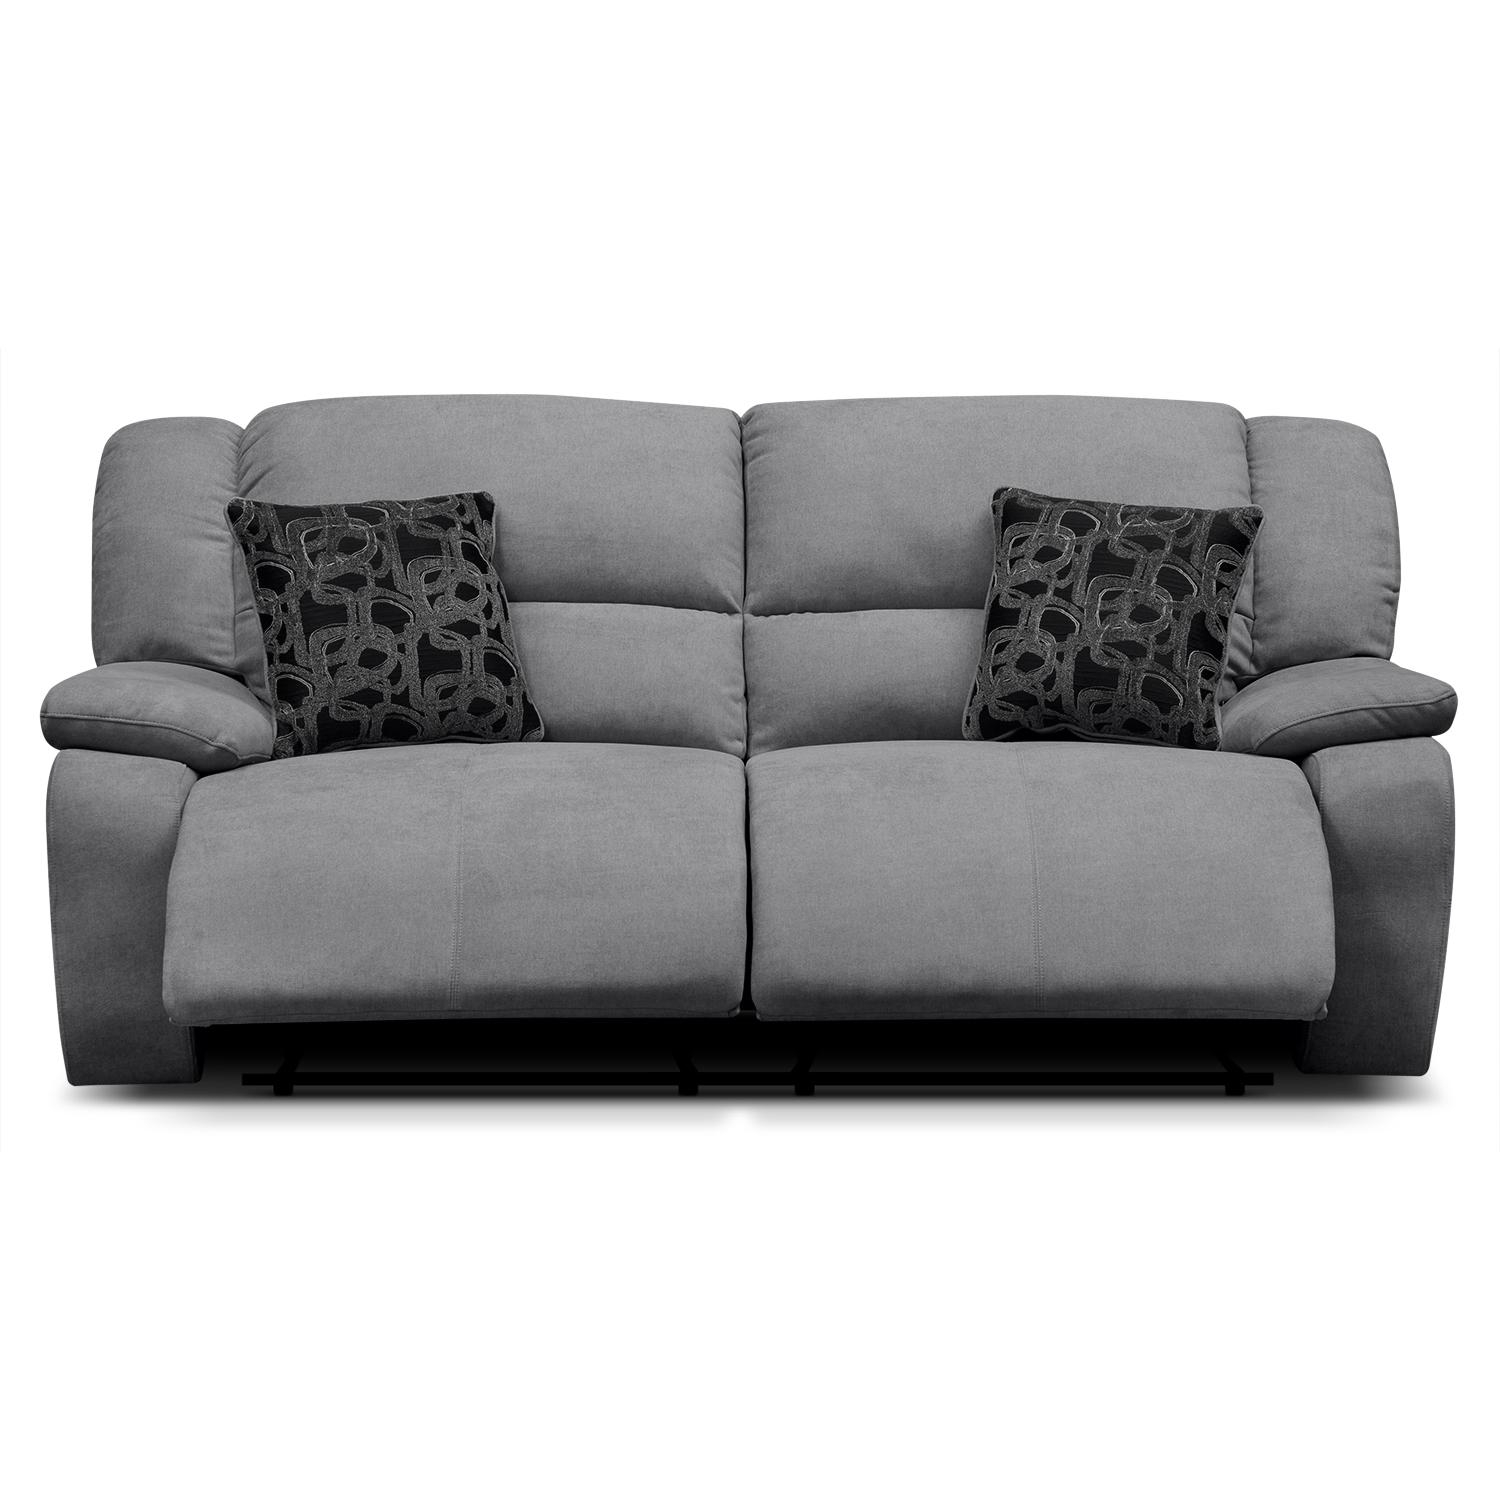 reclining two seat sofa room designs 20 collection of 2 recliner sofas ideas